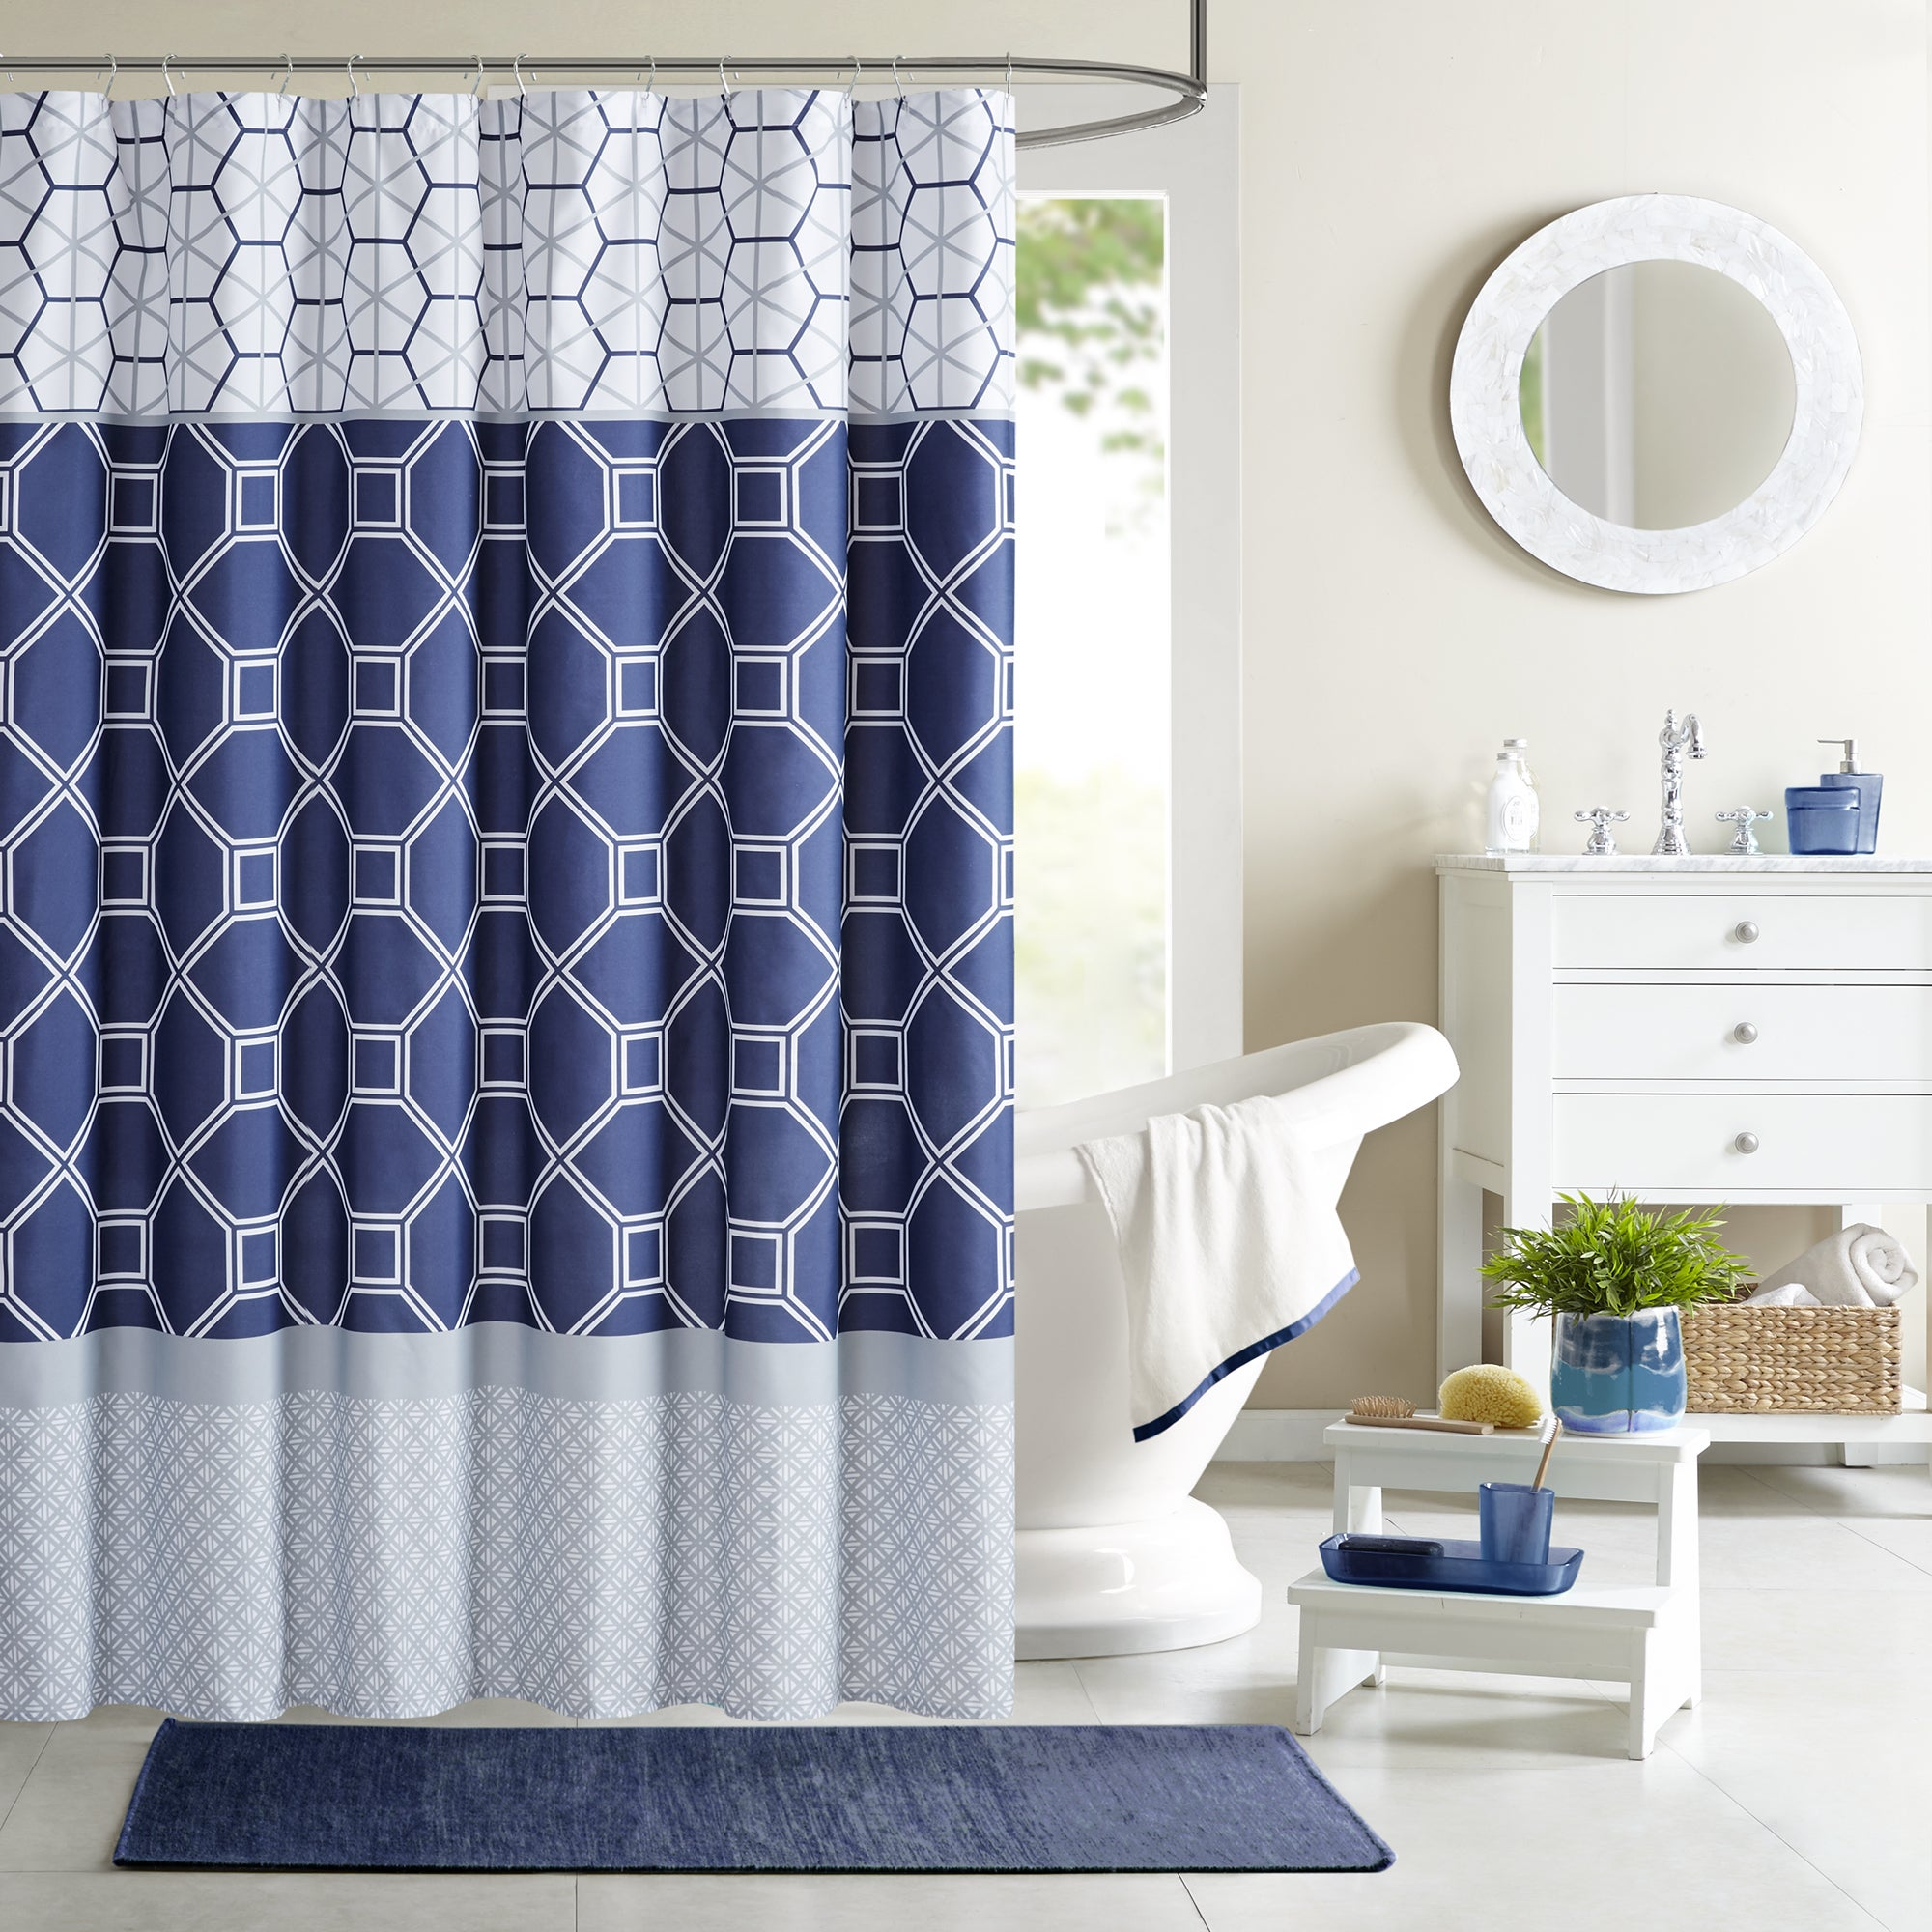 Shop Intelligent Design Zara Navy Microfiber Printed Shower Curtain ...